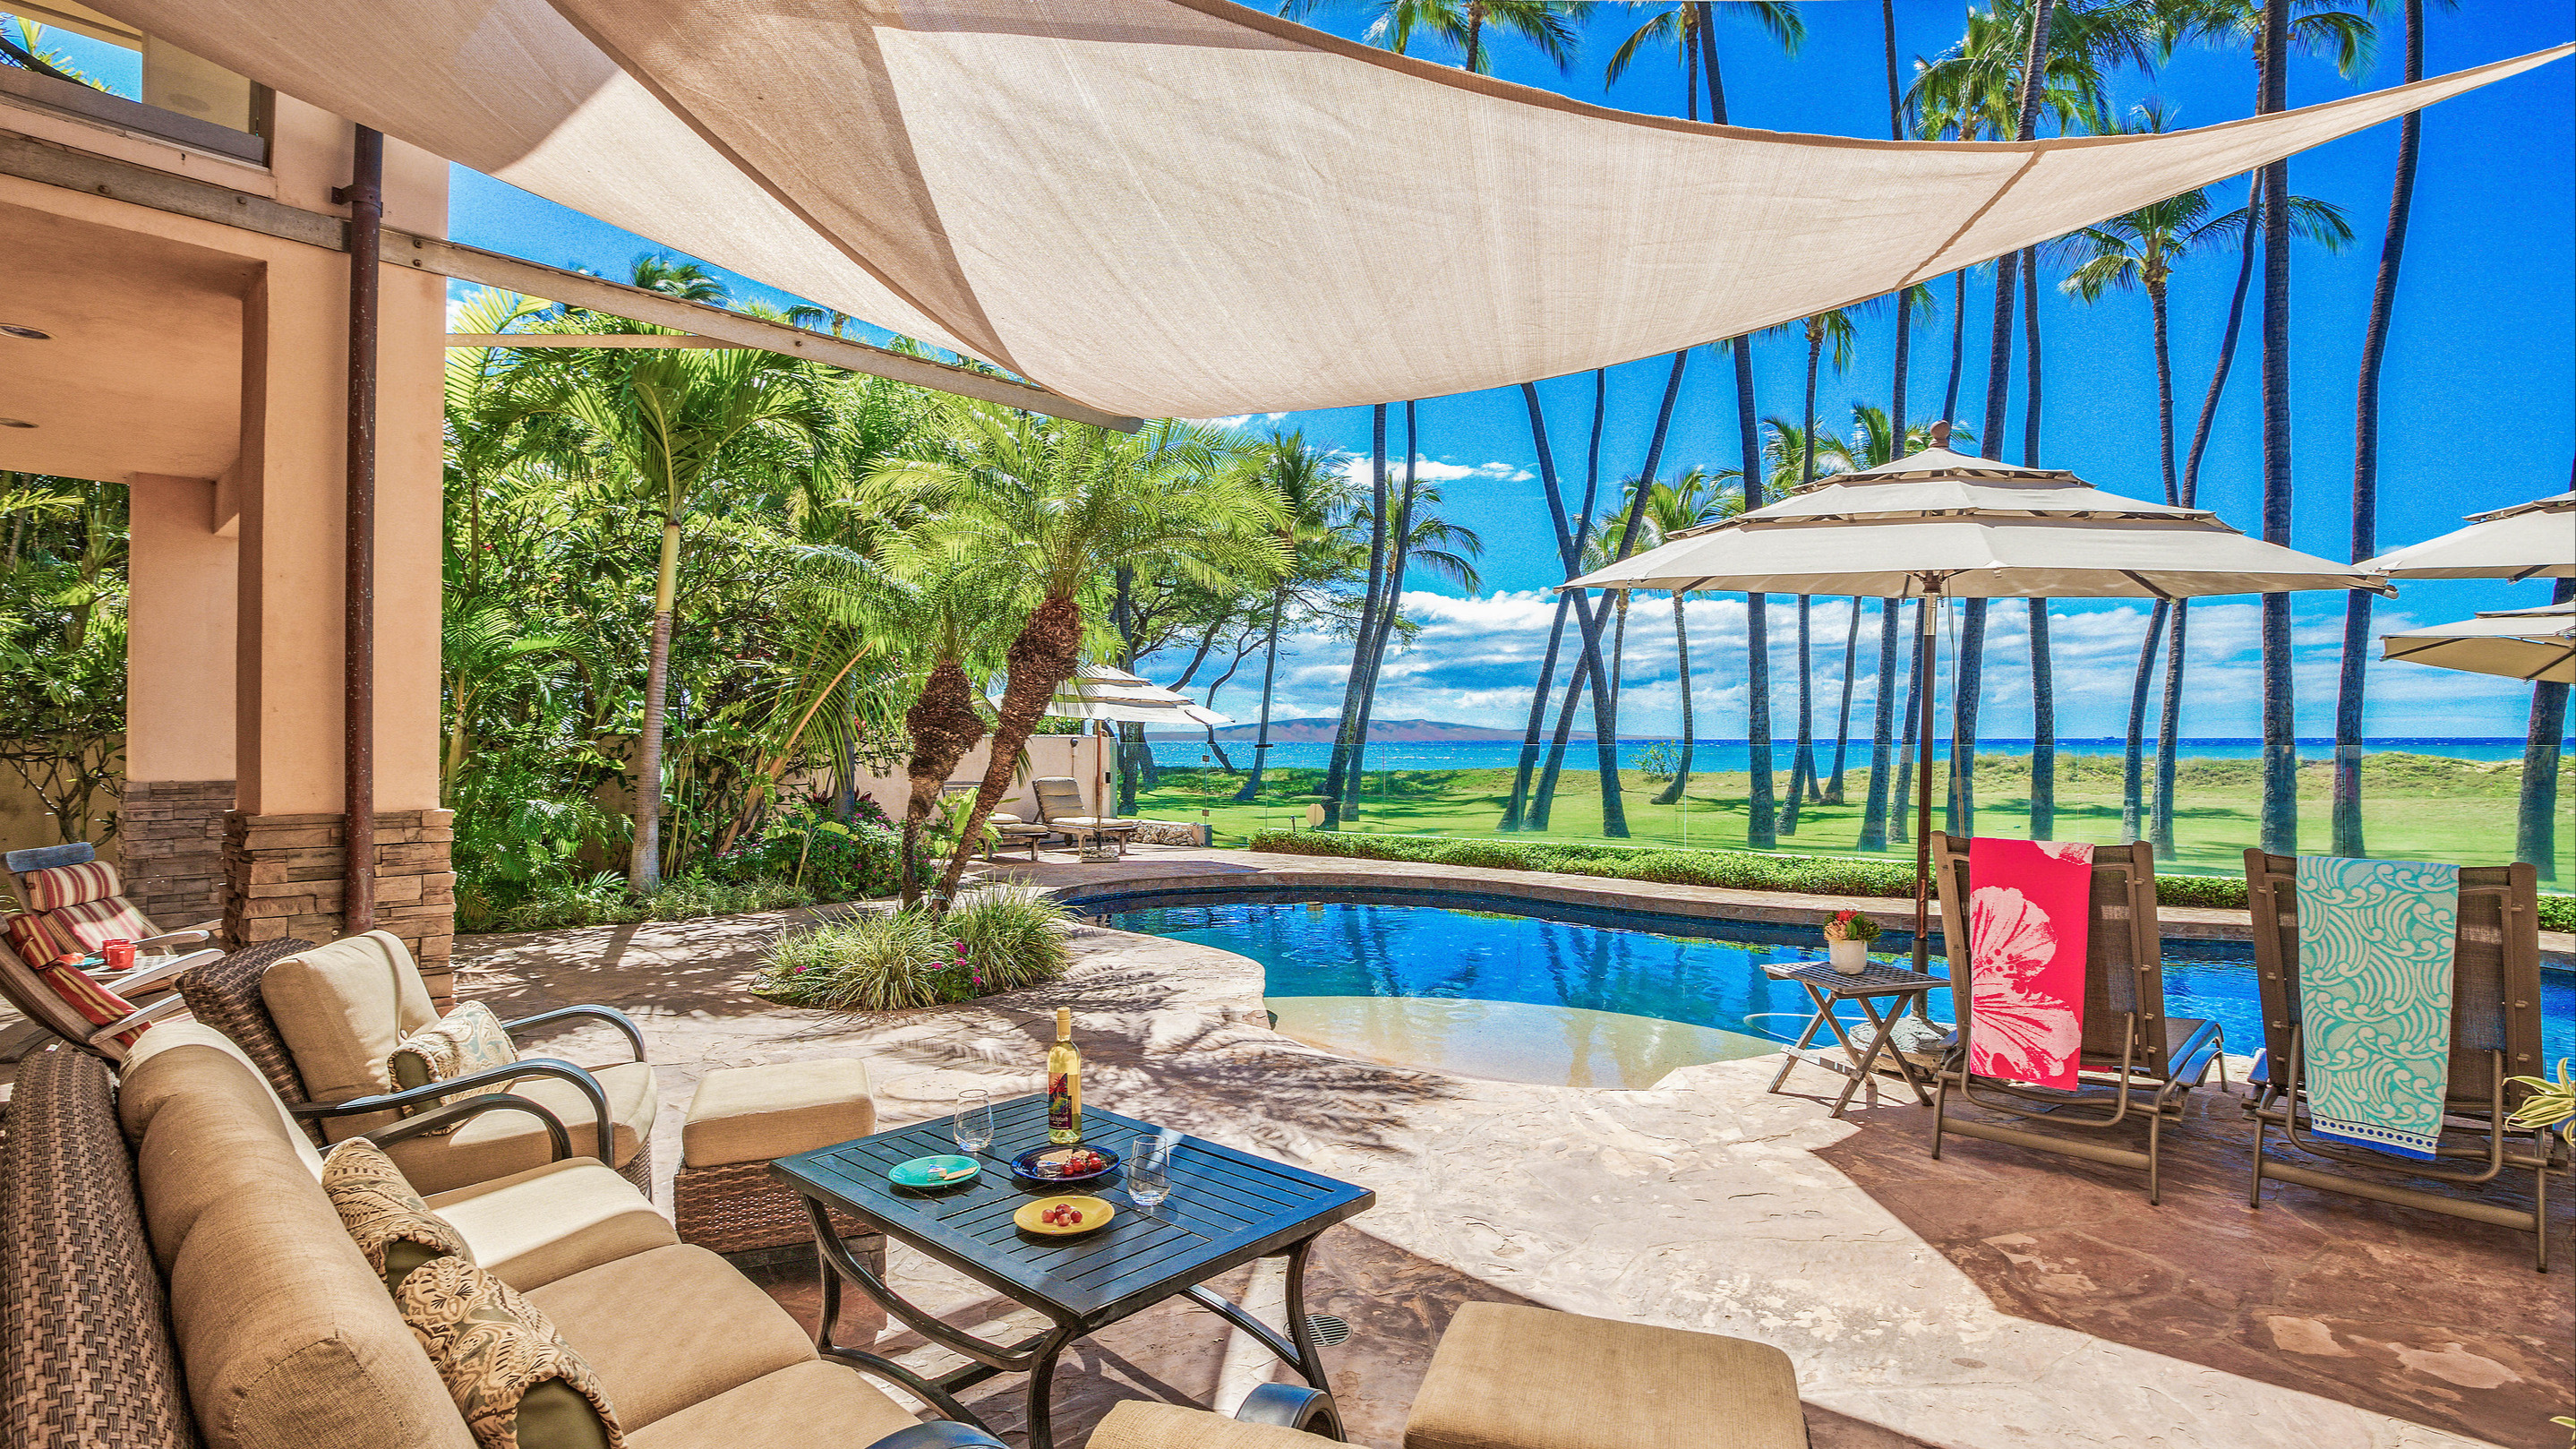 Houses For Rent In Maui For Christmas 2020 Maui, US Vacation Rentals: house rentals & more   Vrbo